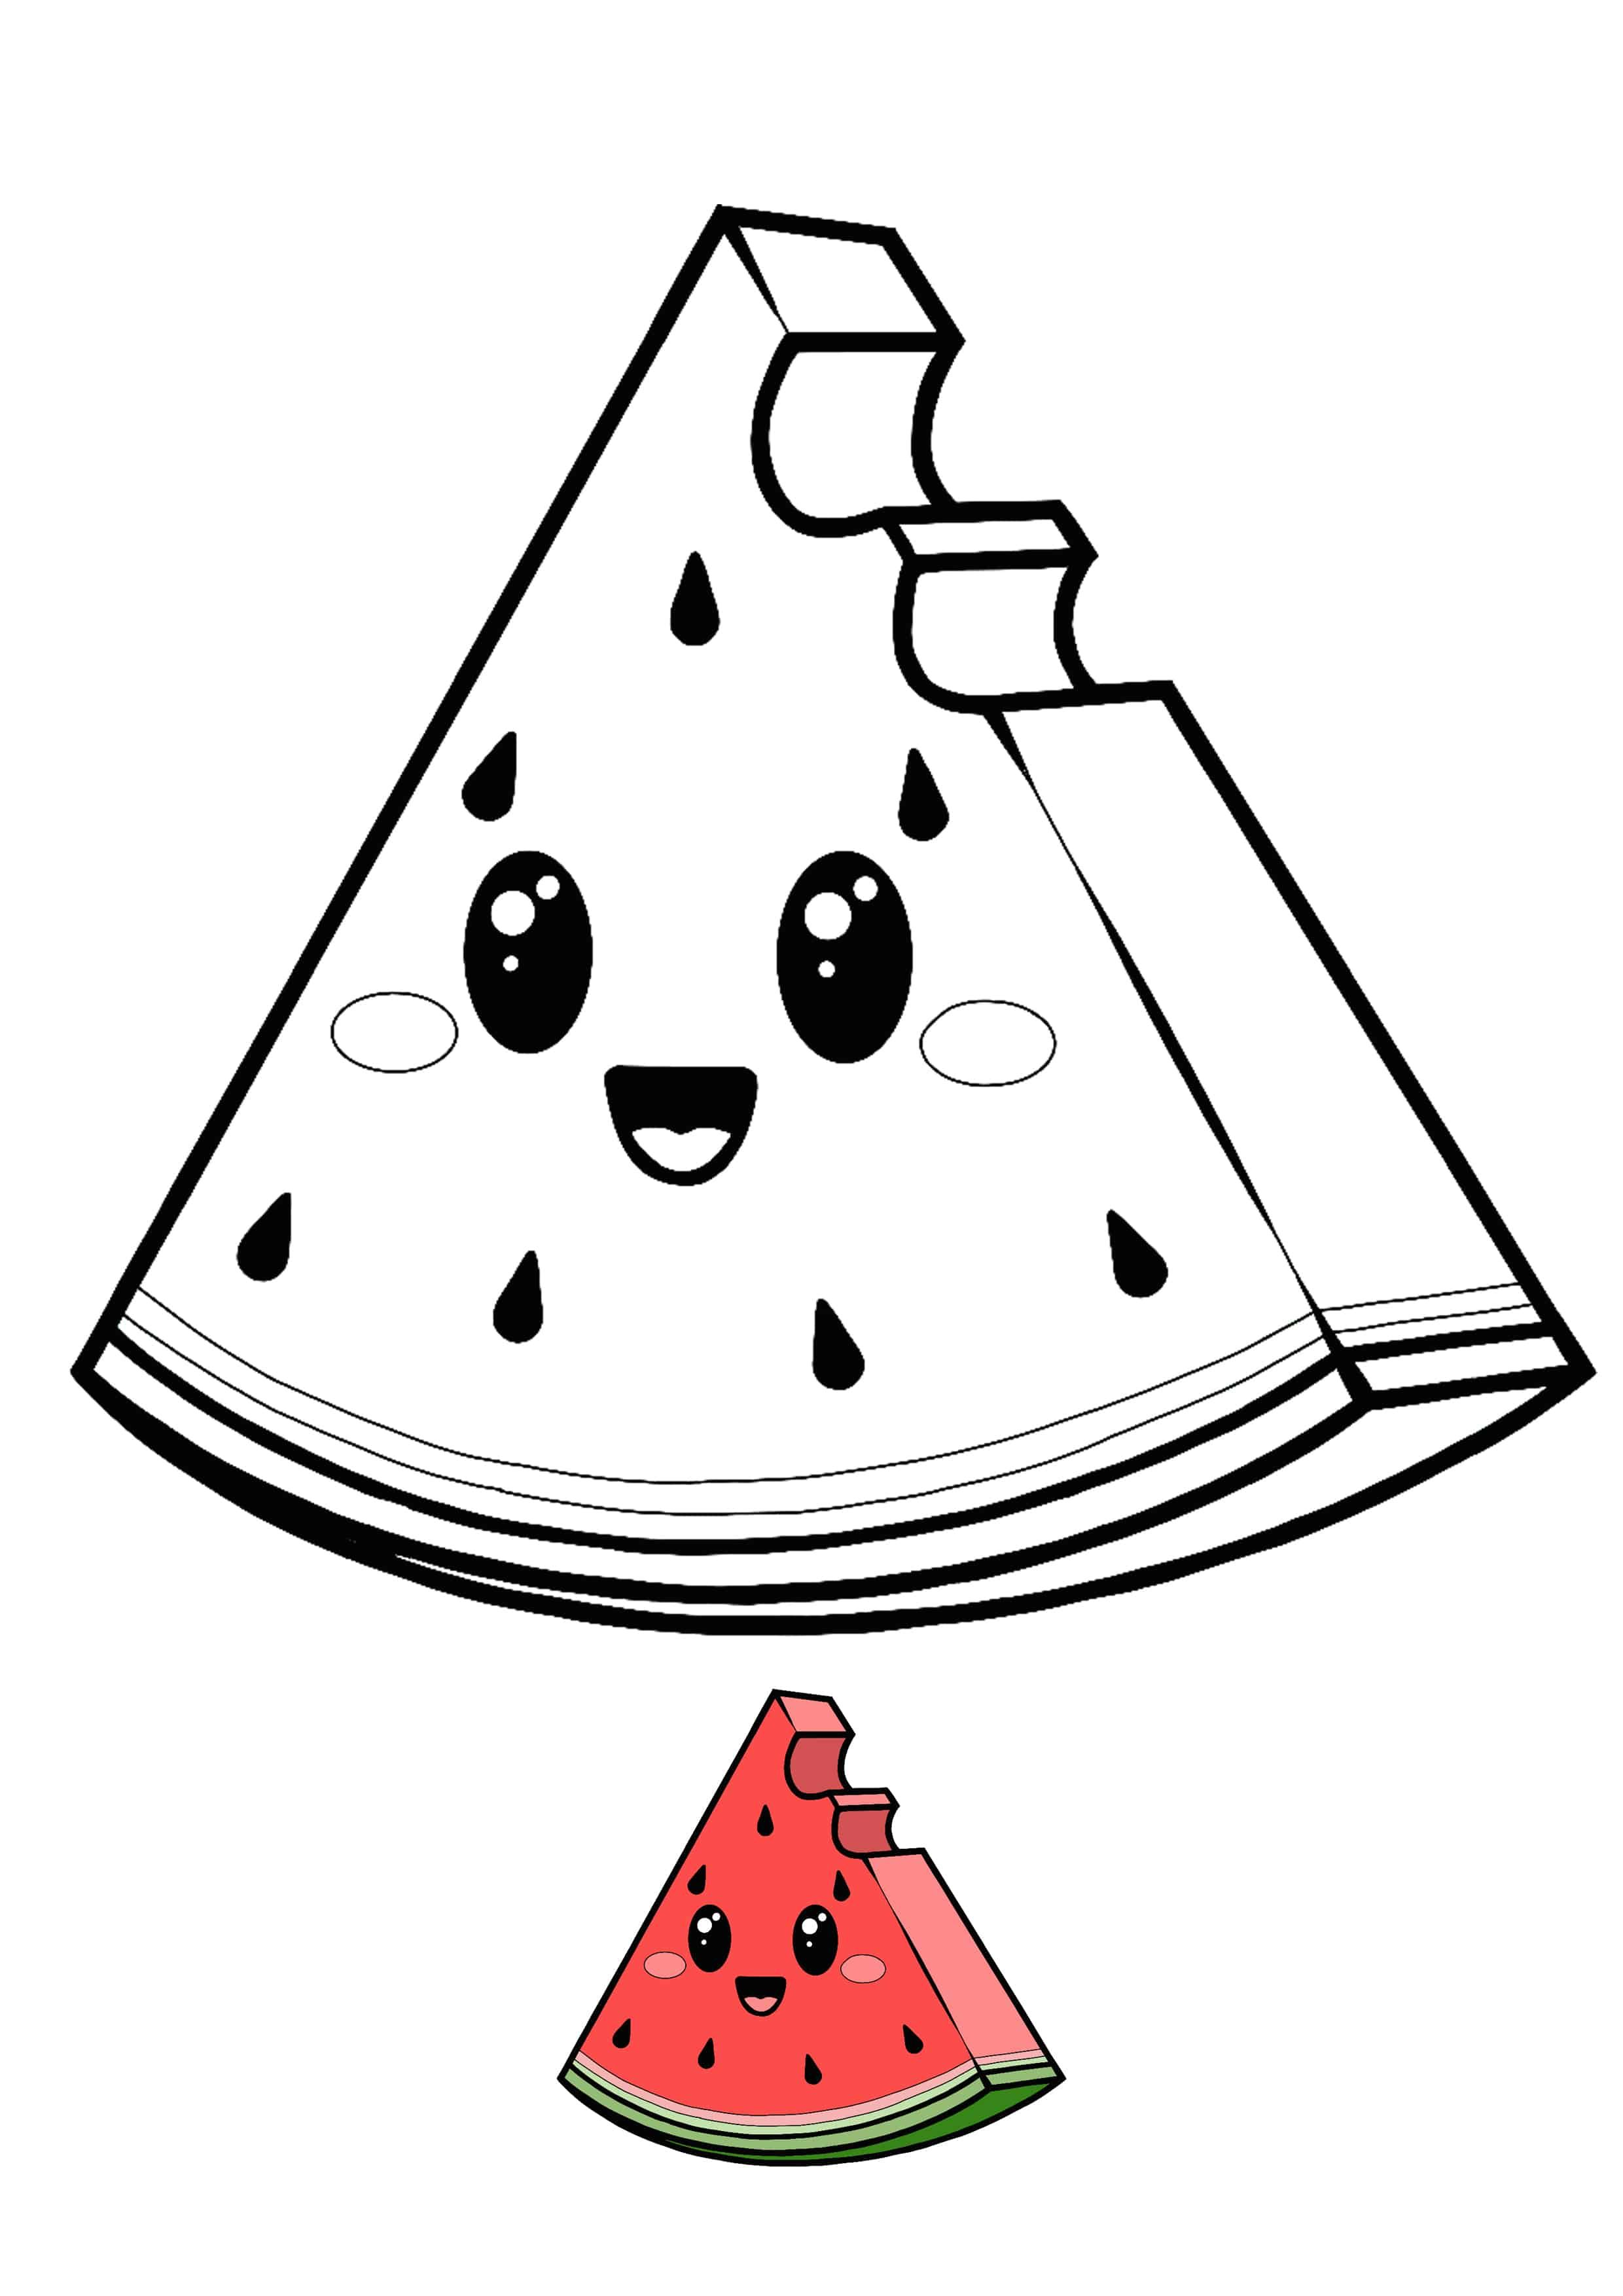 Kawaii Watermelon Coloring Page For Boys And Girls Coloring Pages Coloring Pages For Boys Kawaii